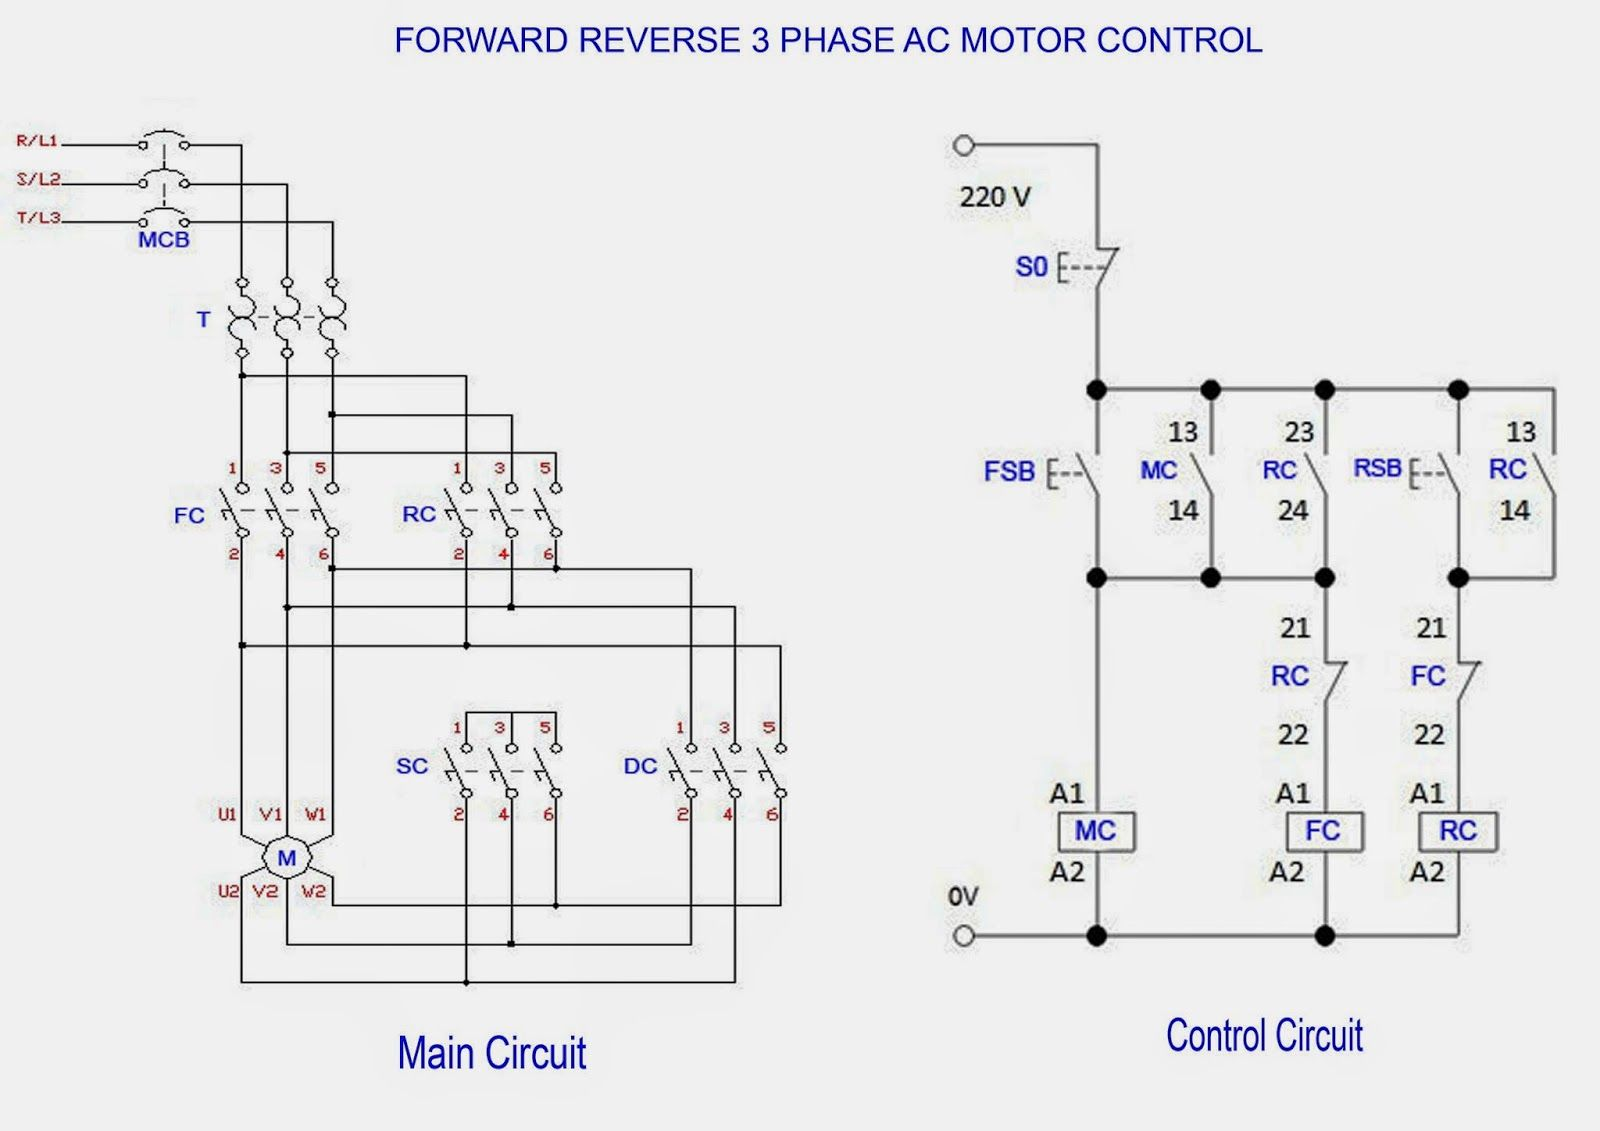 Forward Reverse 3 Phase AC Motor Control Wiring Diagram in ... on alternating current, electric power, high voltage, 3 phase air conditioner wiring, direct current, 3 phase motor controller, 3 phase generator wiring, 3 phase motor theory, 3 phase pump wiring, electric motor, mains electricity, 3 phase compressor wiring, earthing system, 3 phase ac motor control, 3 phase stator wiring, electricity meter, electrical wiring, motor controller, high leg delta, electricity distribution, short circuit, 3 phase transformer wiring, 3 phase ac traction motor, 3 phase to single phase wiring, 3 phase motor amp draw, 3 phase fan wiring, 3 phase starter wiring, 3 phase panel wiring, power factor, ac power, 3 phase ac induction motor, 3 phase dual voltage motor, rotary phase converter, 3 phase switch wiring, 3 phase ac generator theory, 3 phase electric motor, electric power transmission,